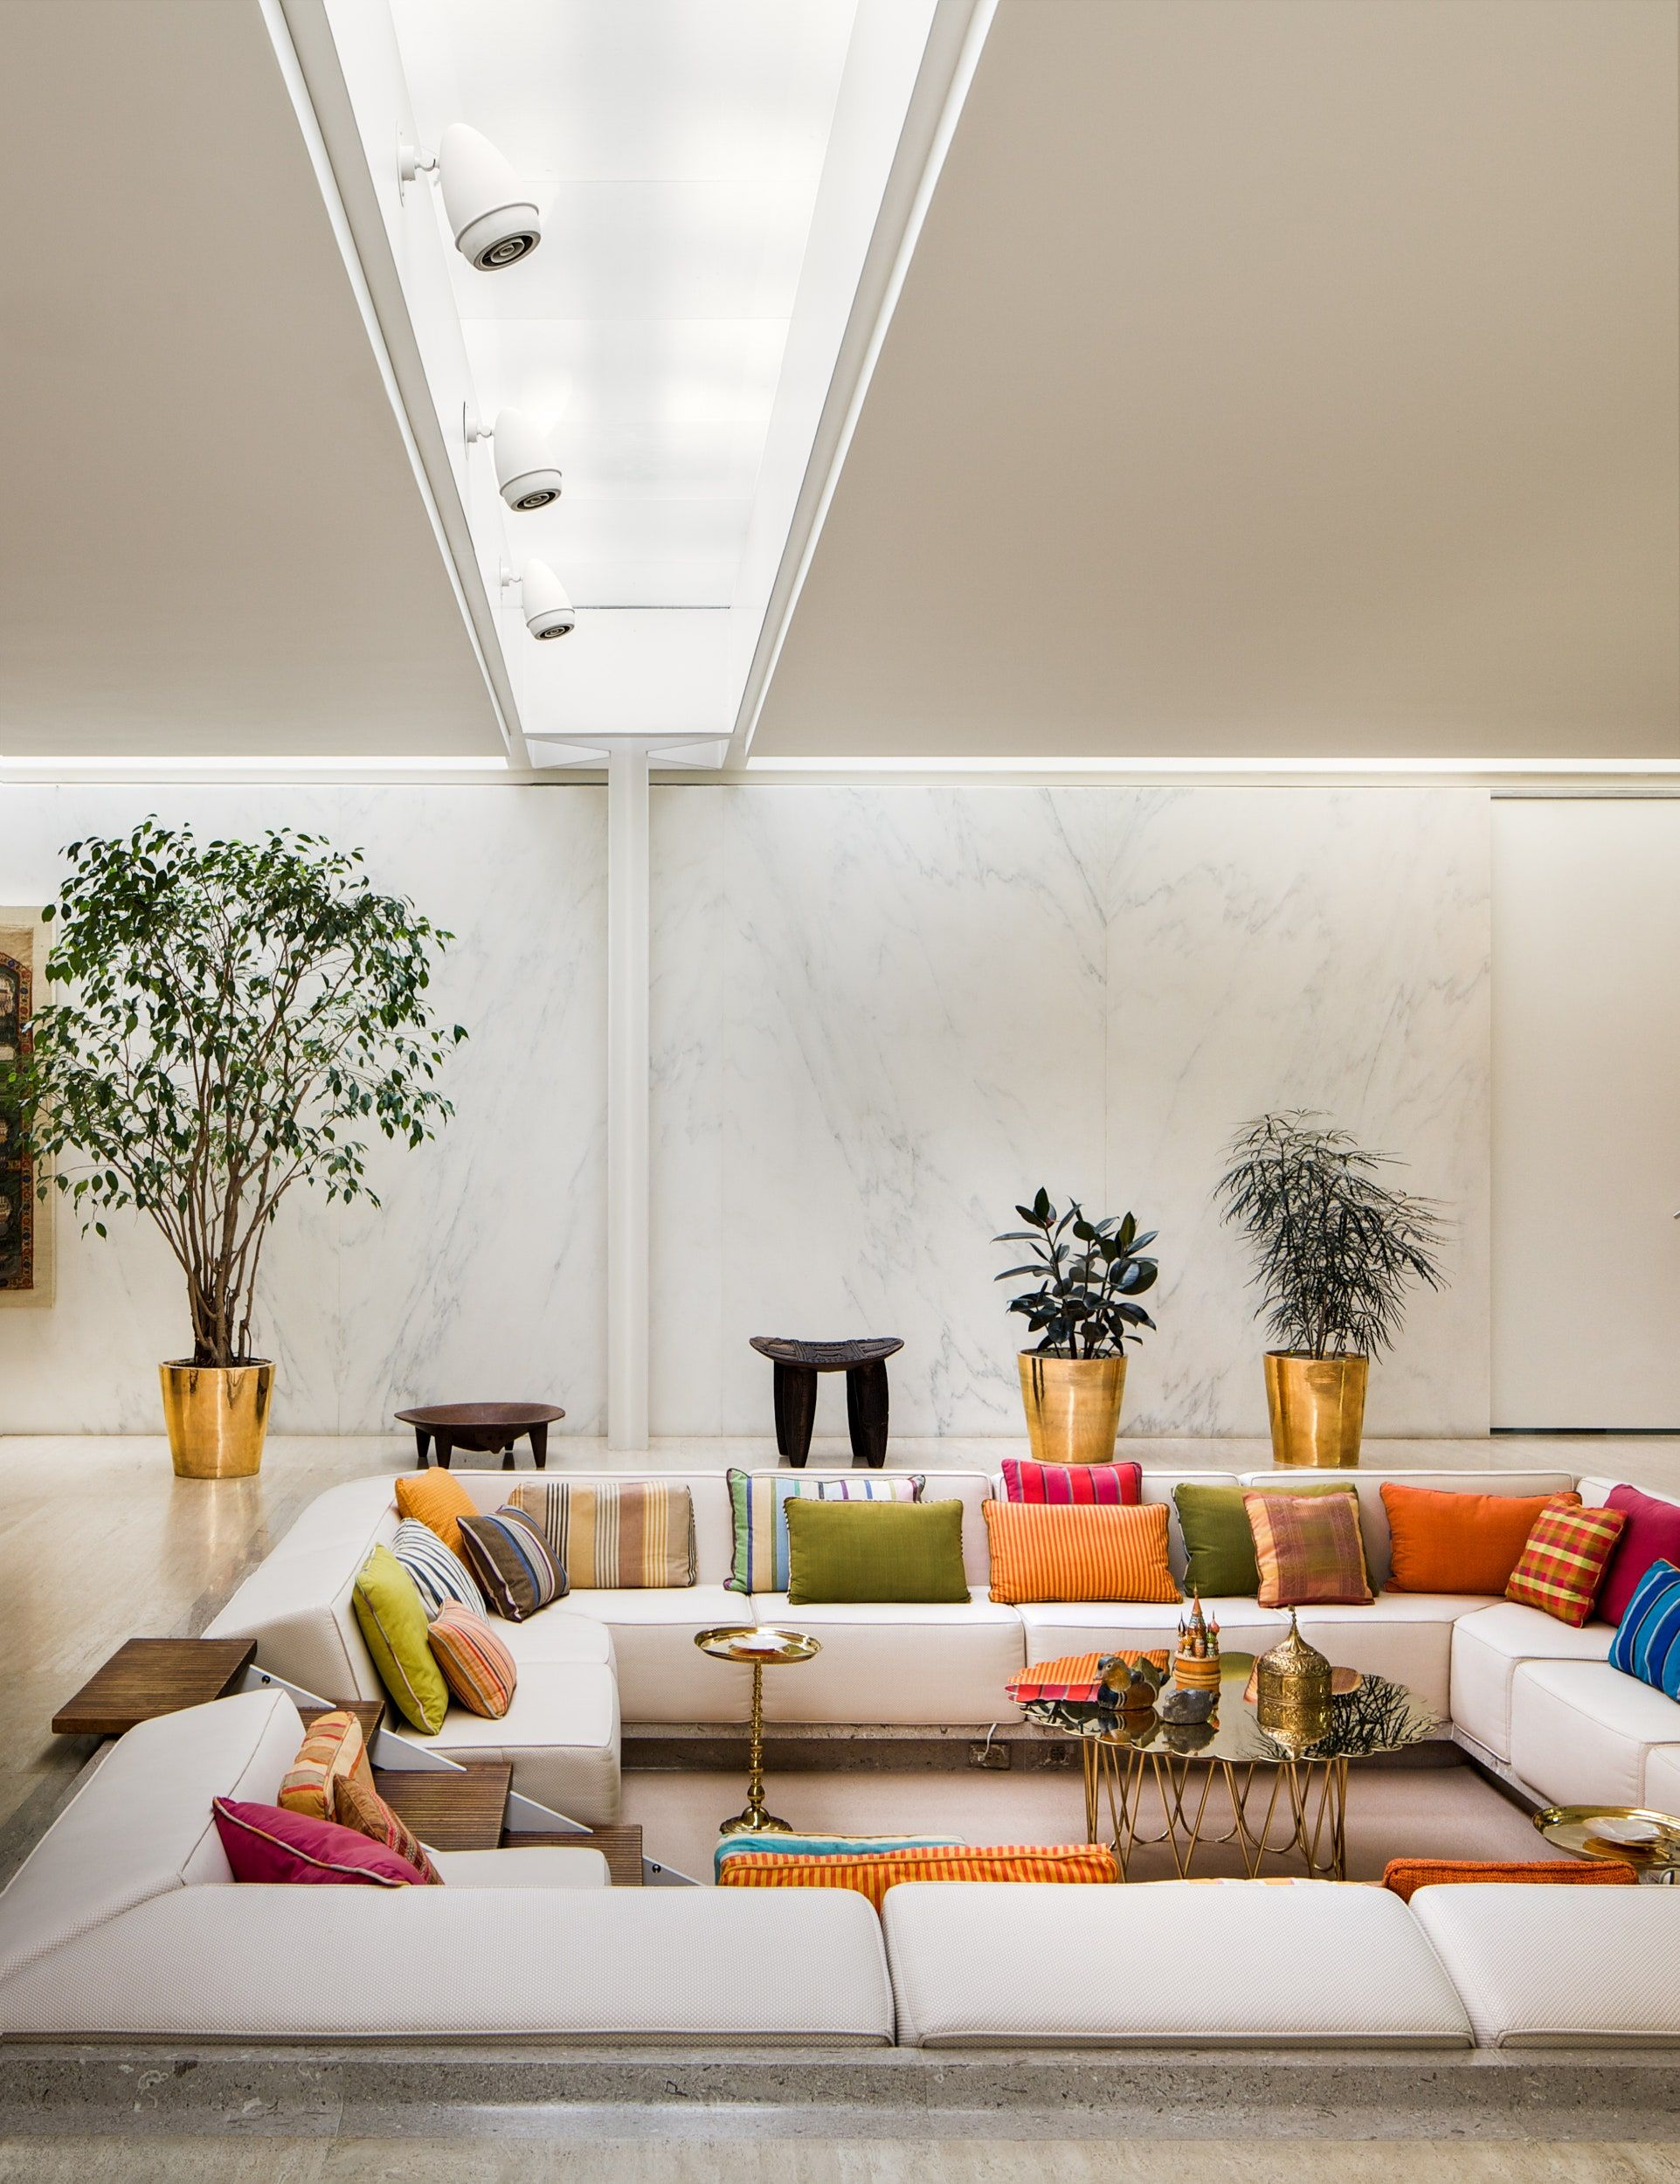 15 Interiors Every Design Lover Must See In Person Architectural Digest Interior Living Room Designs Historical Interior